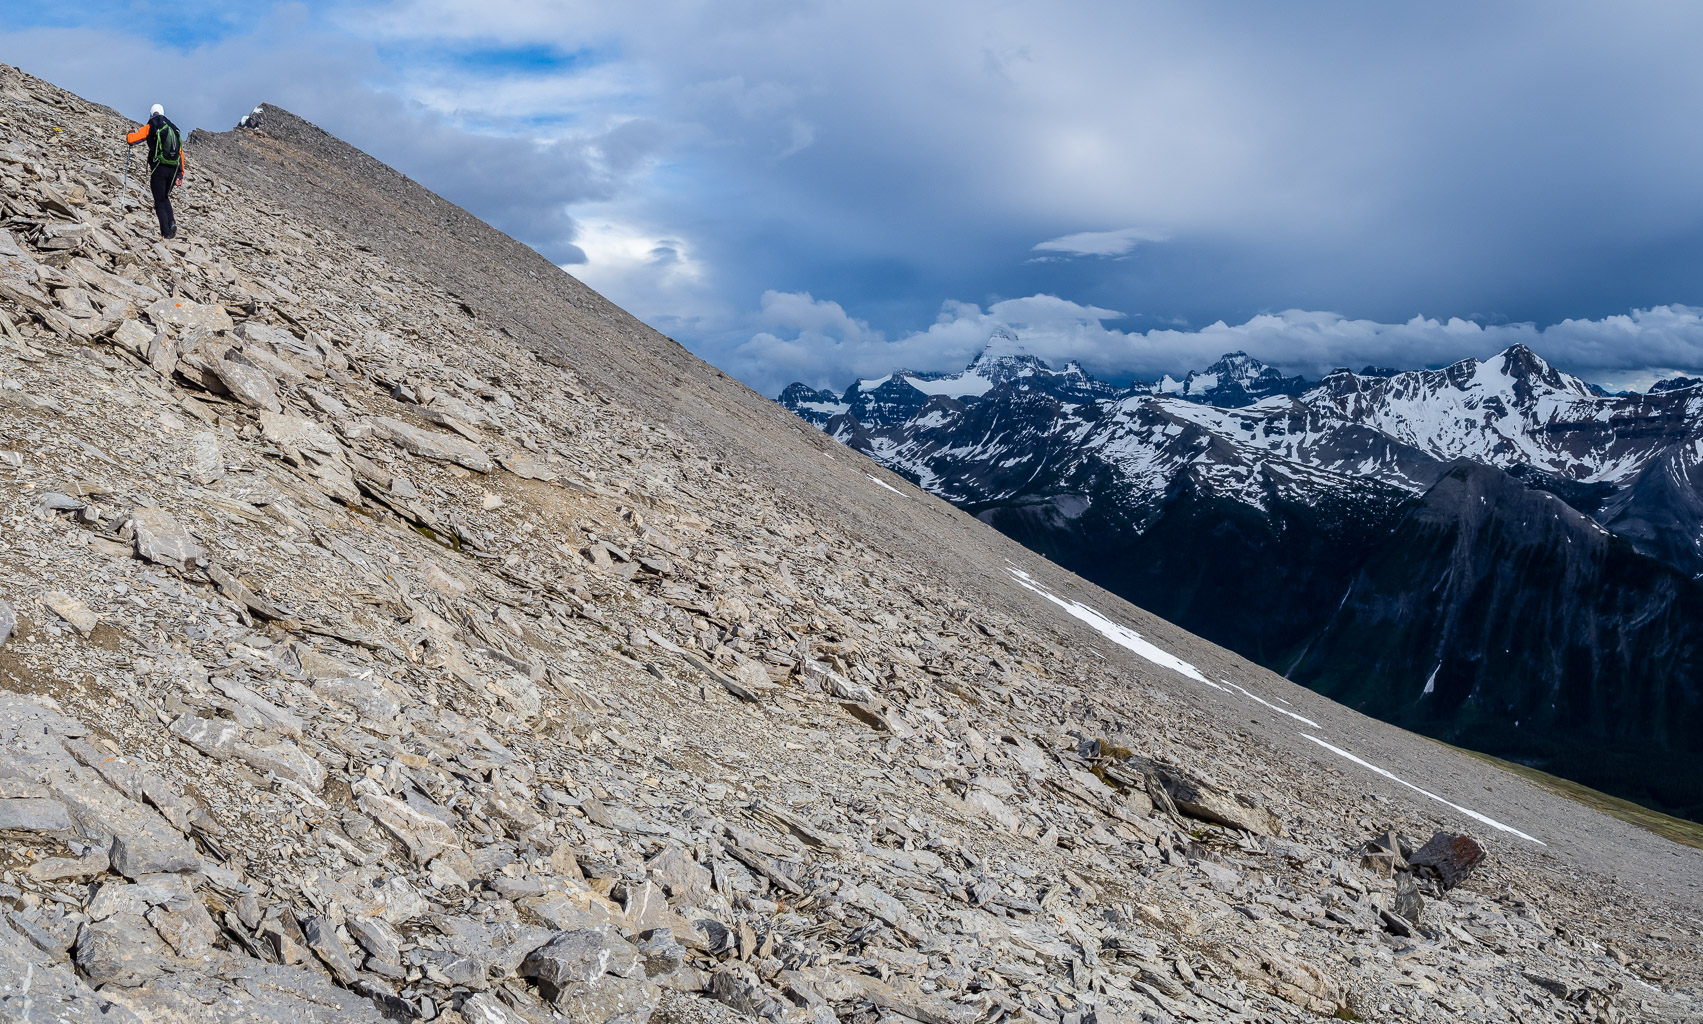 Surreal lighting as we continue to work our way along the never ending summit ridge of Golden Mountain - Assiniboine still showing at center distance.